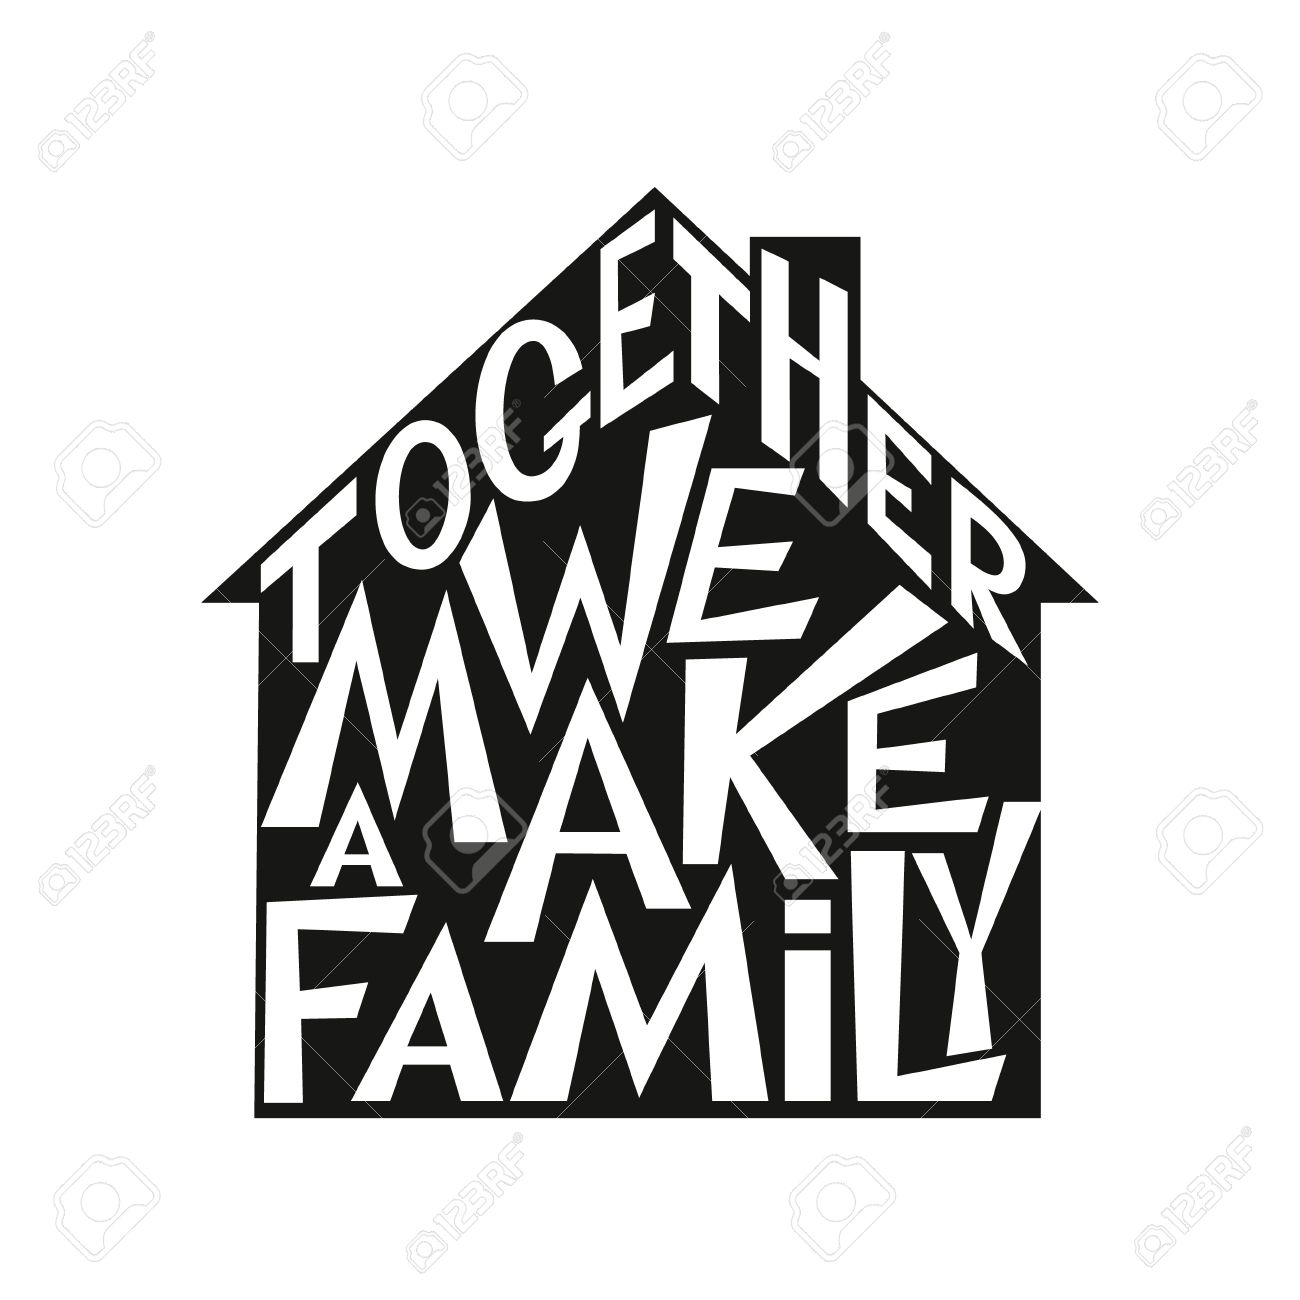 T shirt design inspiration typography - Inspirational Family Quote Together We Make A Family Isolated On White Background For Posters Prints Cards T Shirt Design Home Decorations Pillows